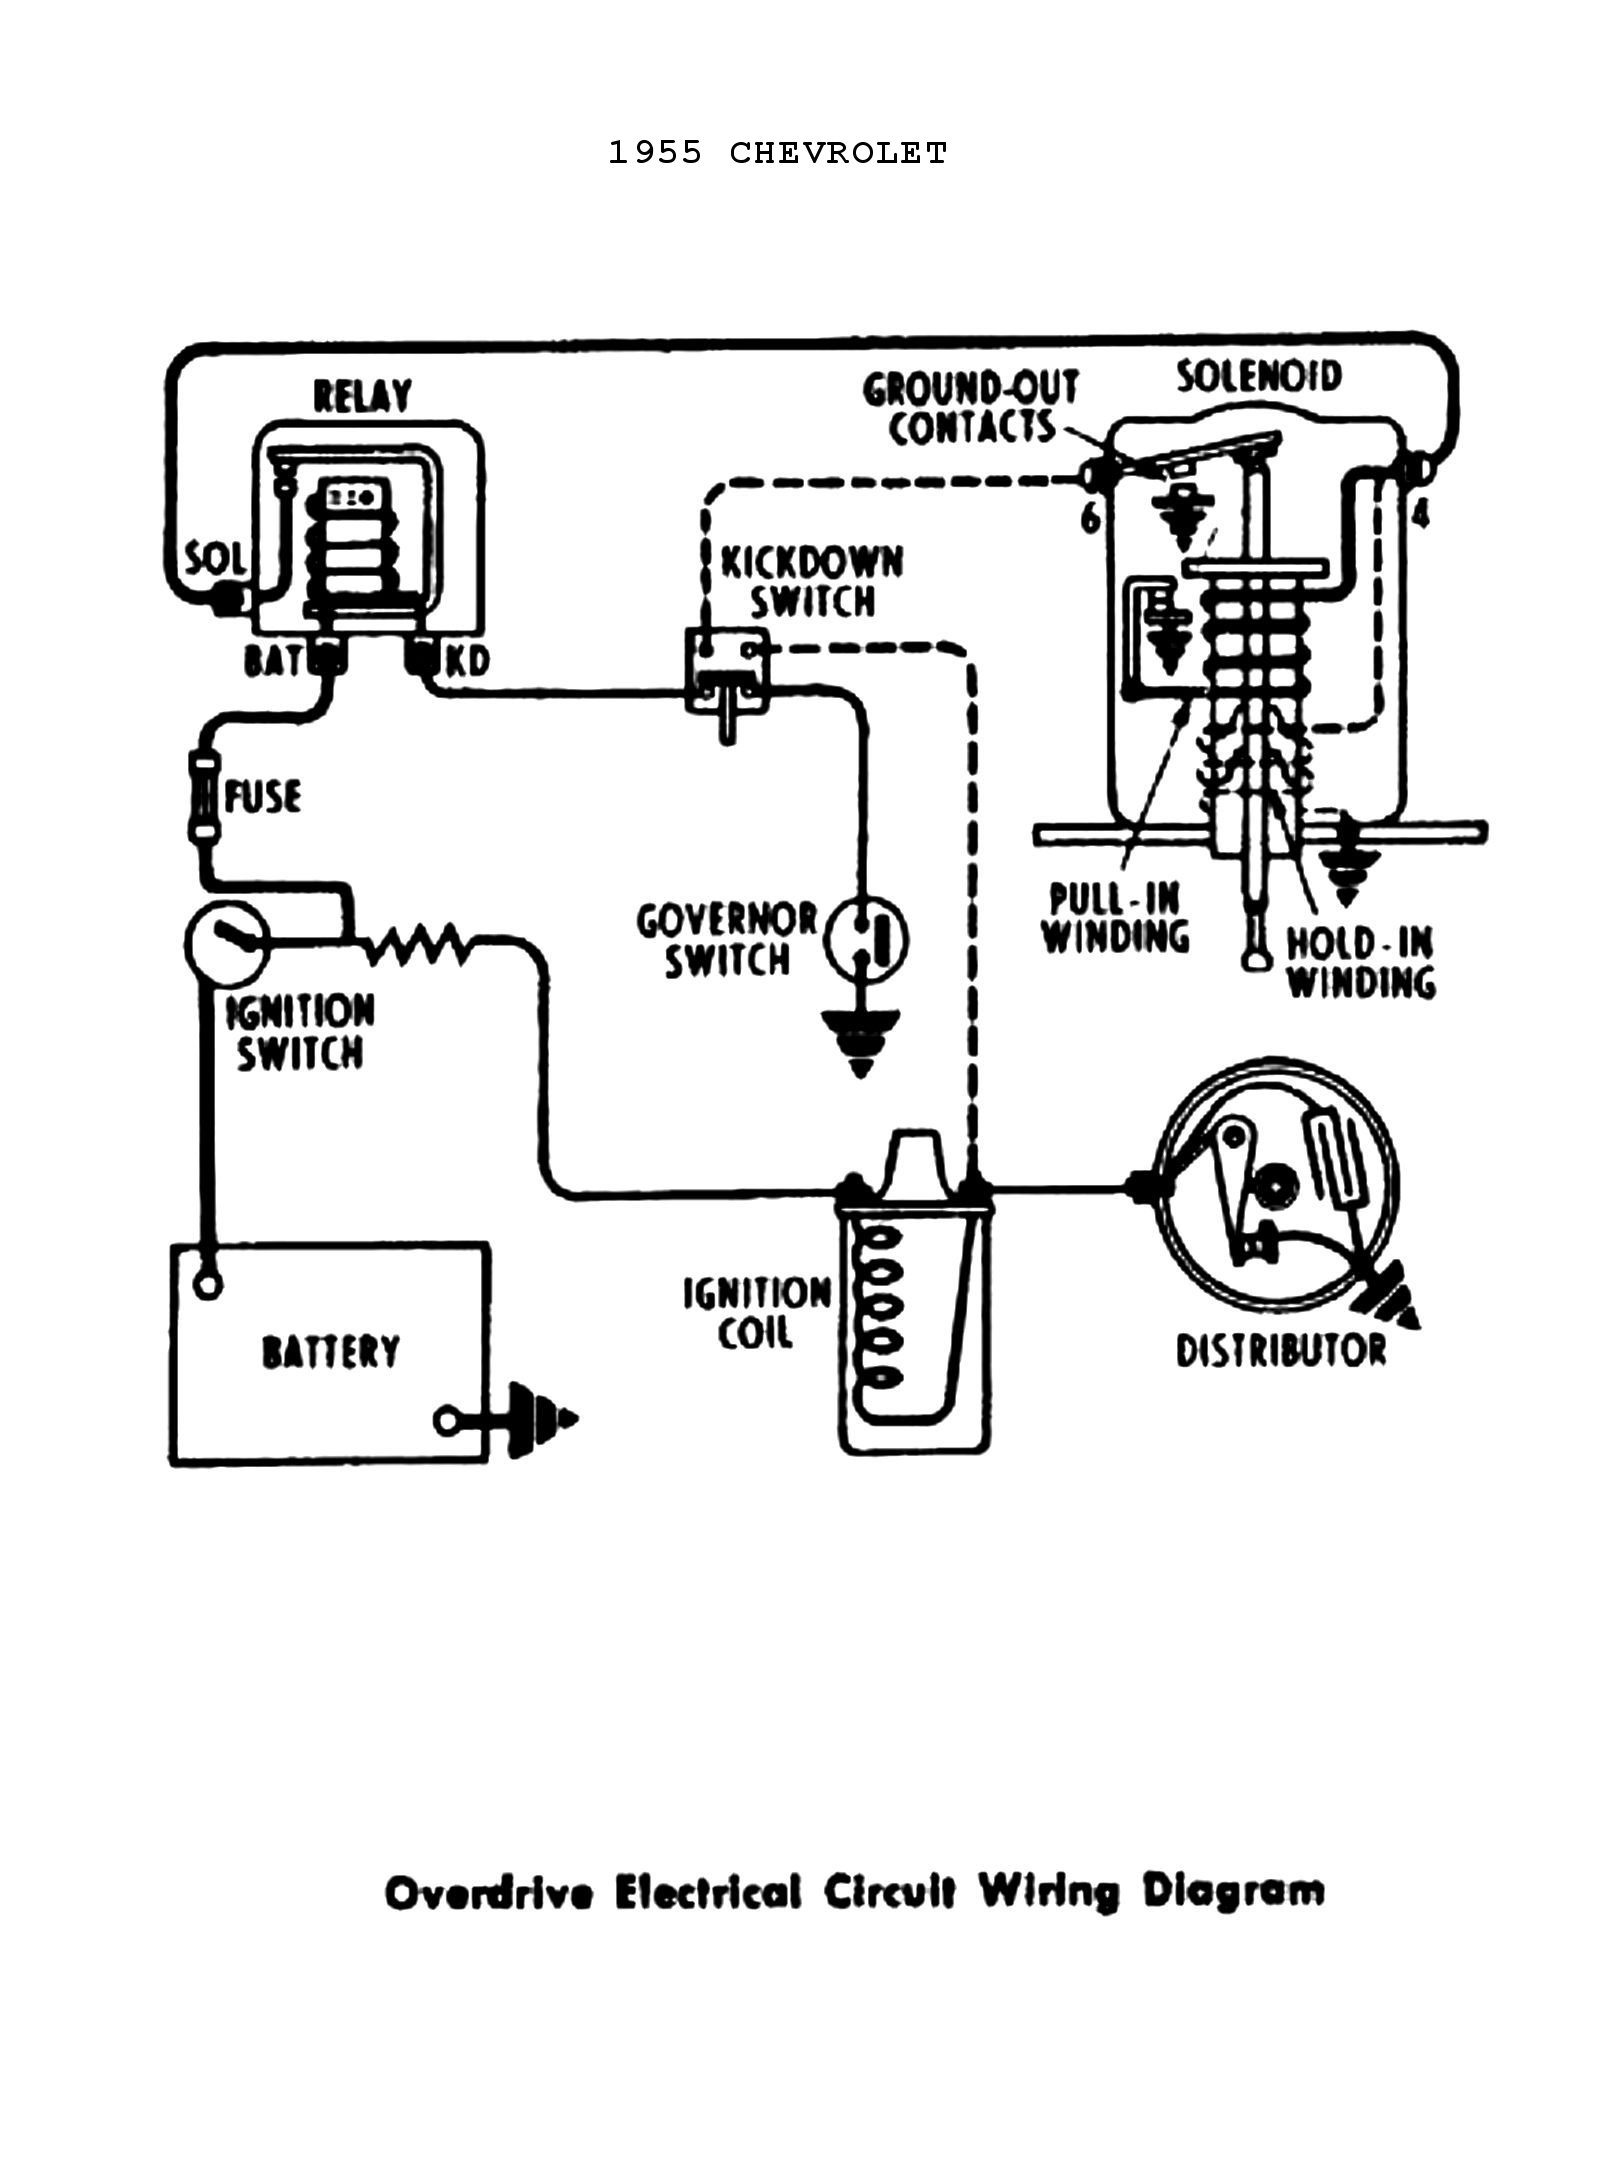 Ford Coil Wiring Diagram Library. 56 Chevy Wiring Harness Schematic Simple Diagram Rh David Huggett Co Uk Old Ford Ignition Coil. Wiring. Ignition Coil Wiring Diagram 1968 At Scoala.co